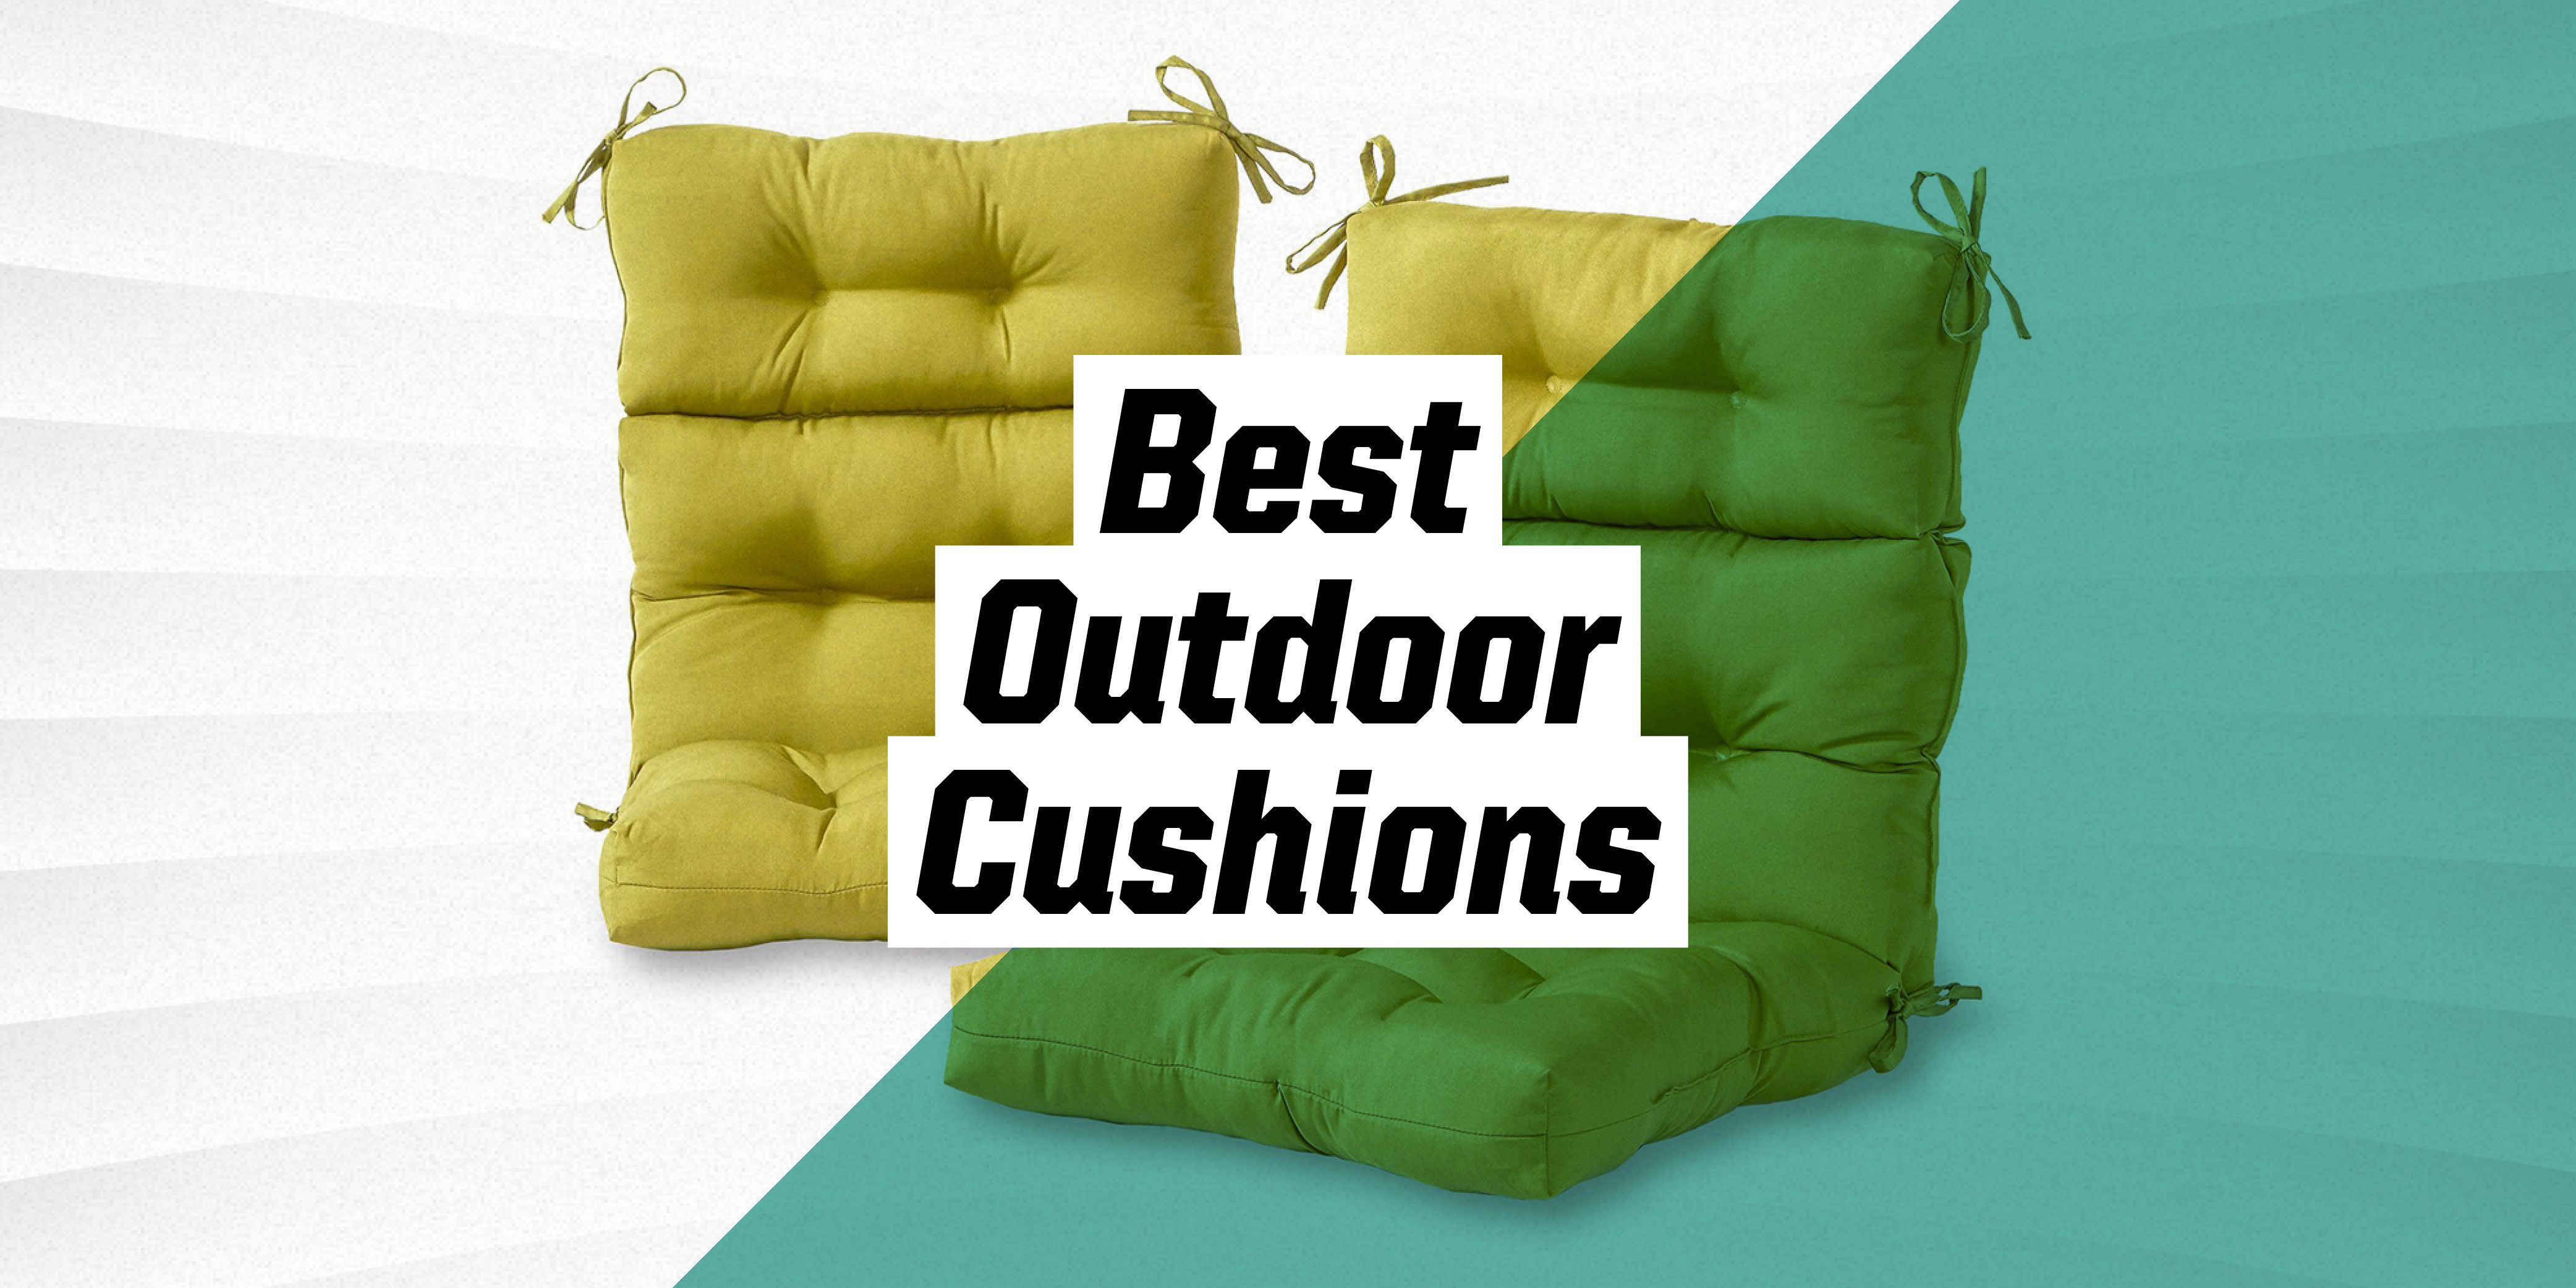 give your furniture a refresh with these attractive outdoor cushions